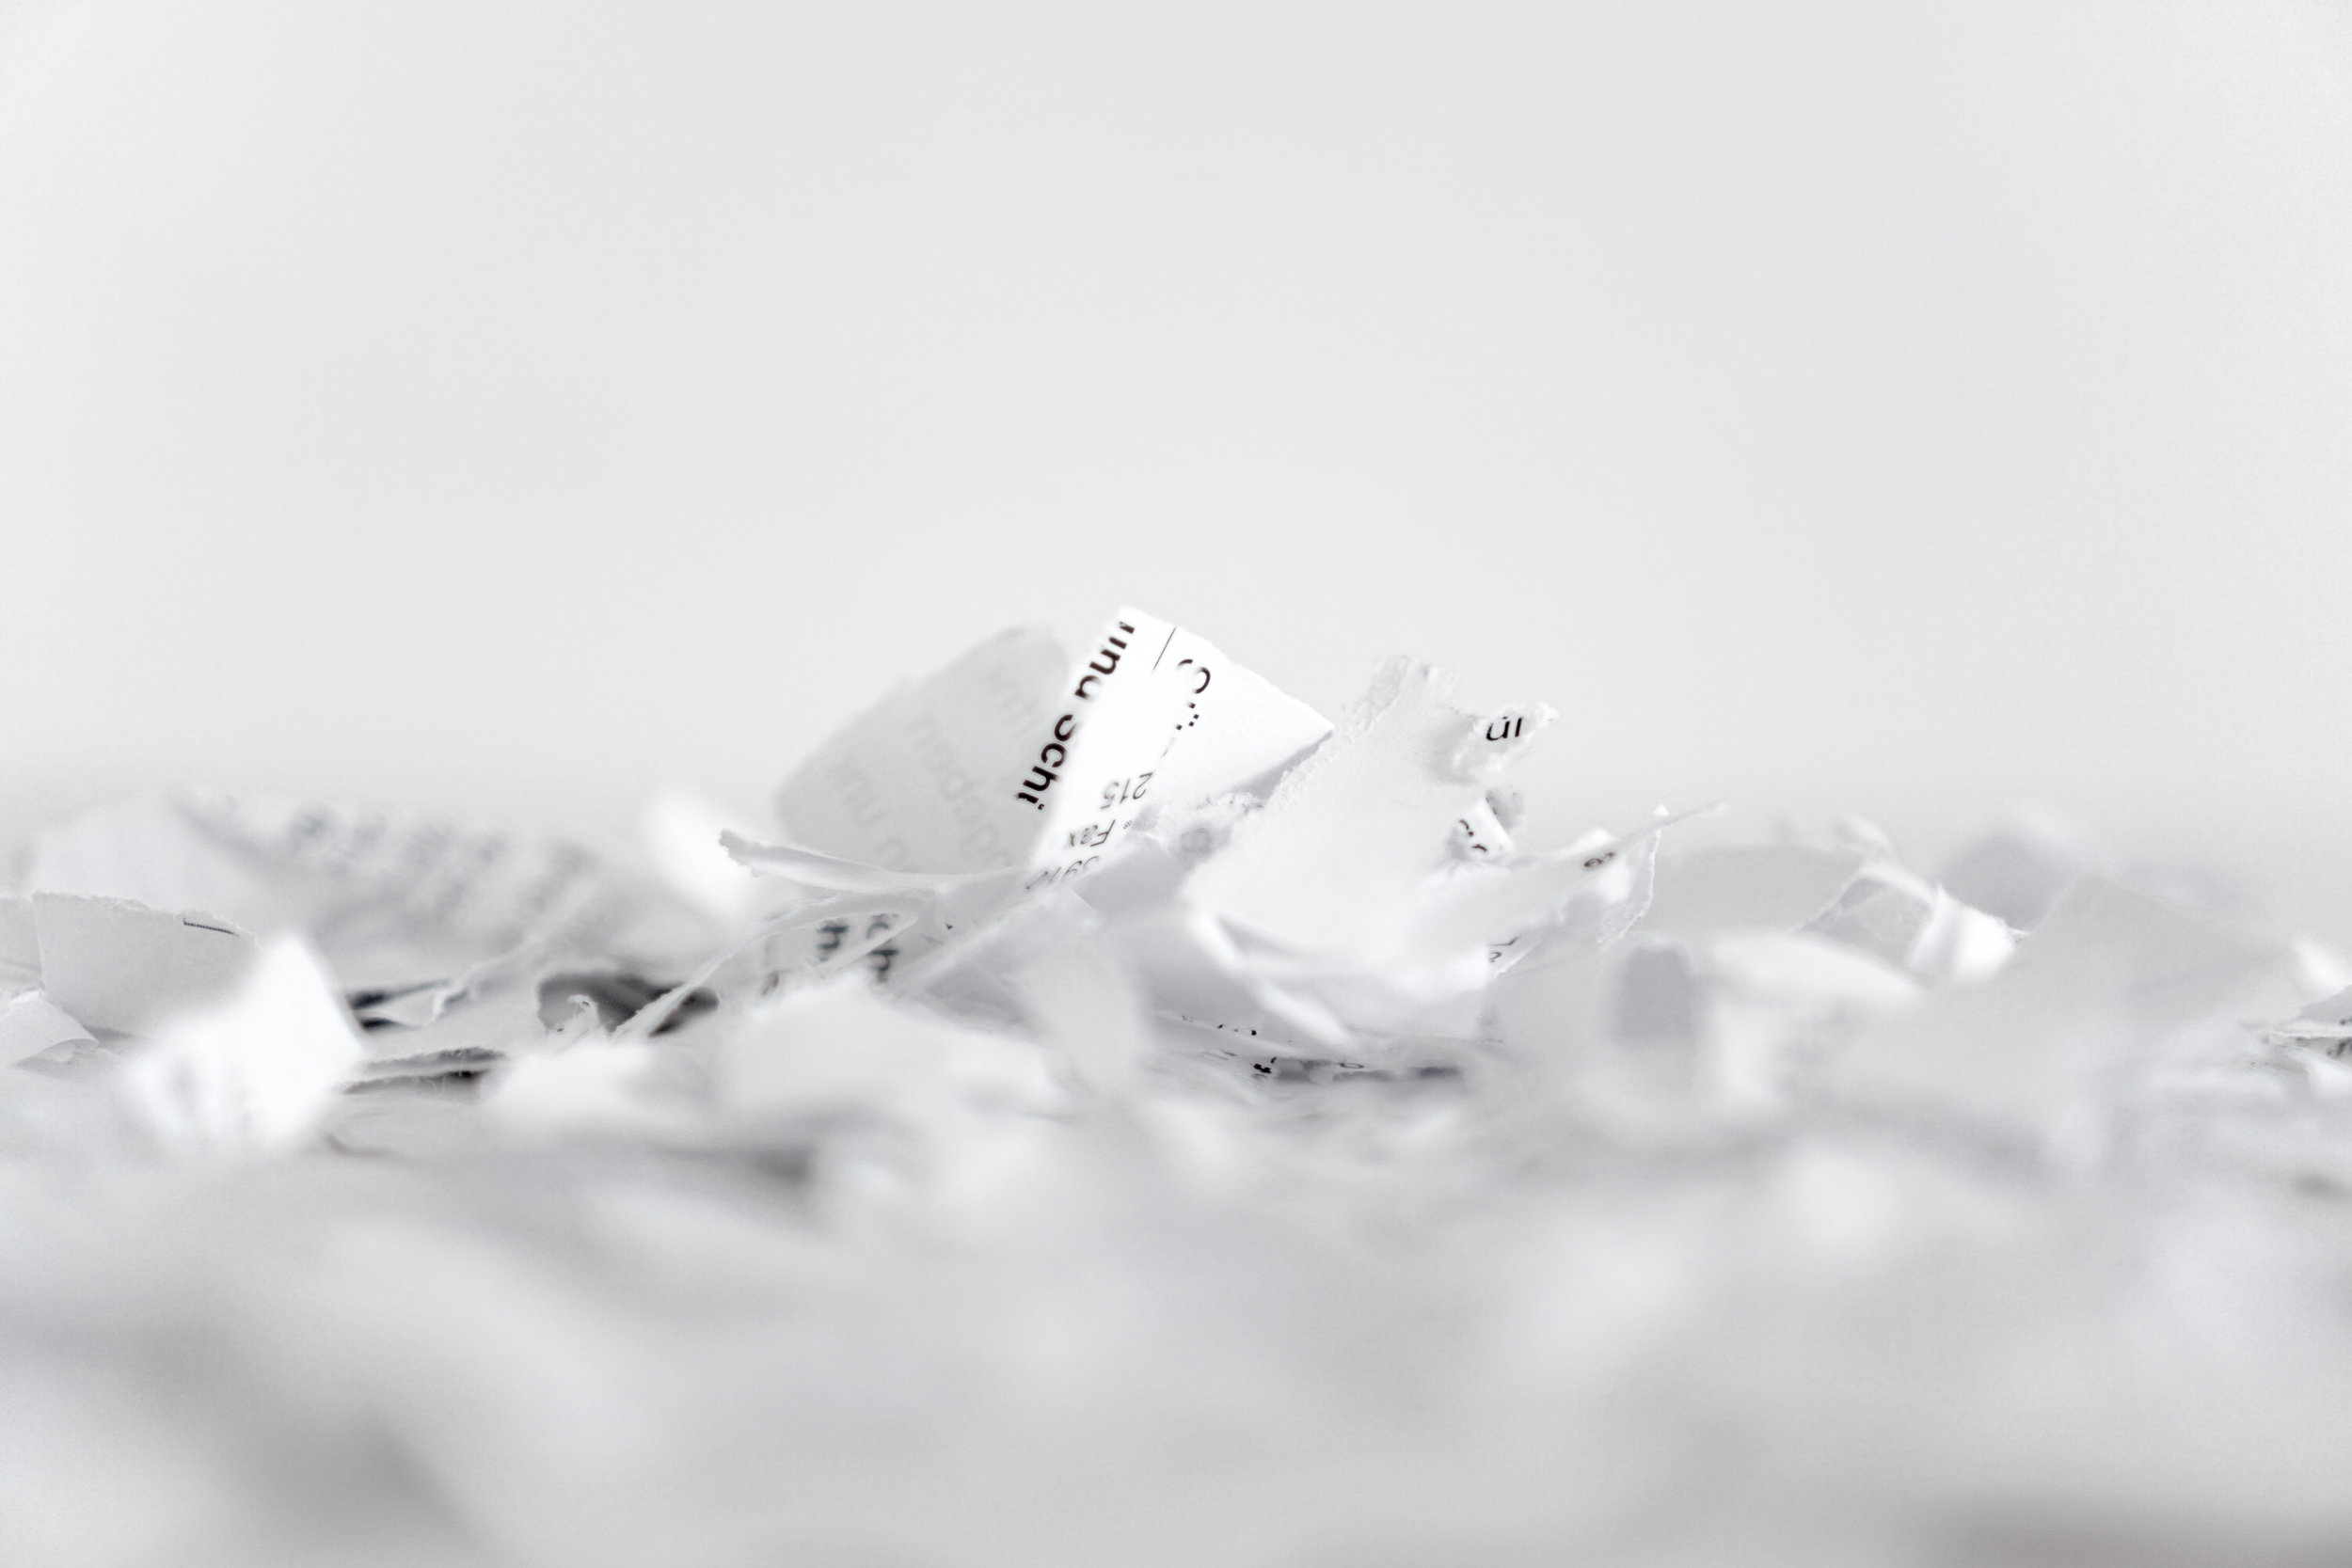 Paper, Shredder, Flakes, Recycling, Cut, Shredded Paper.jpg